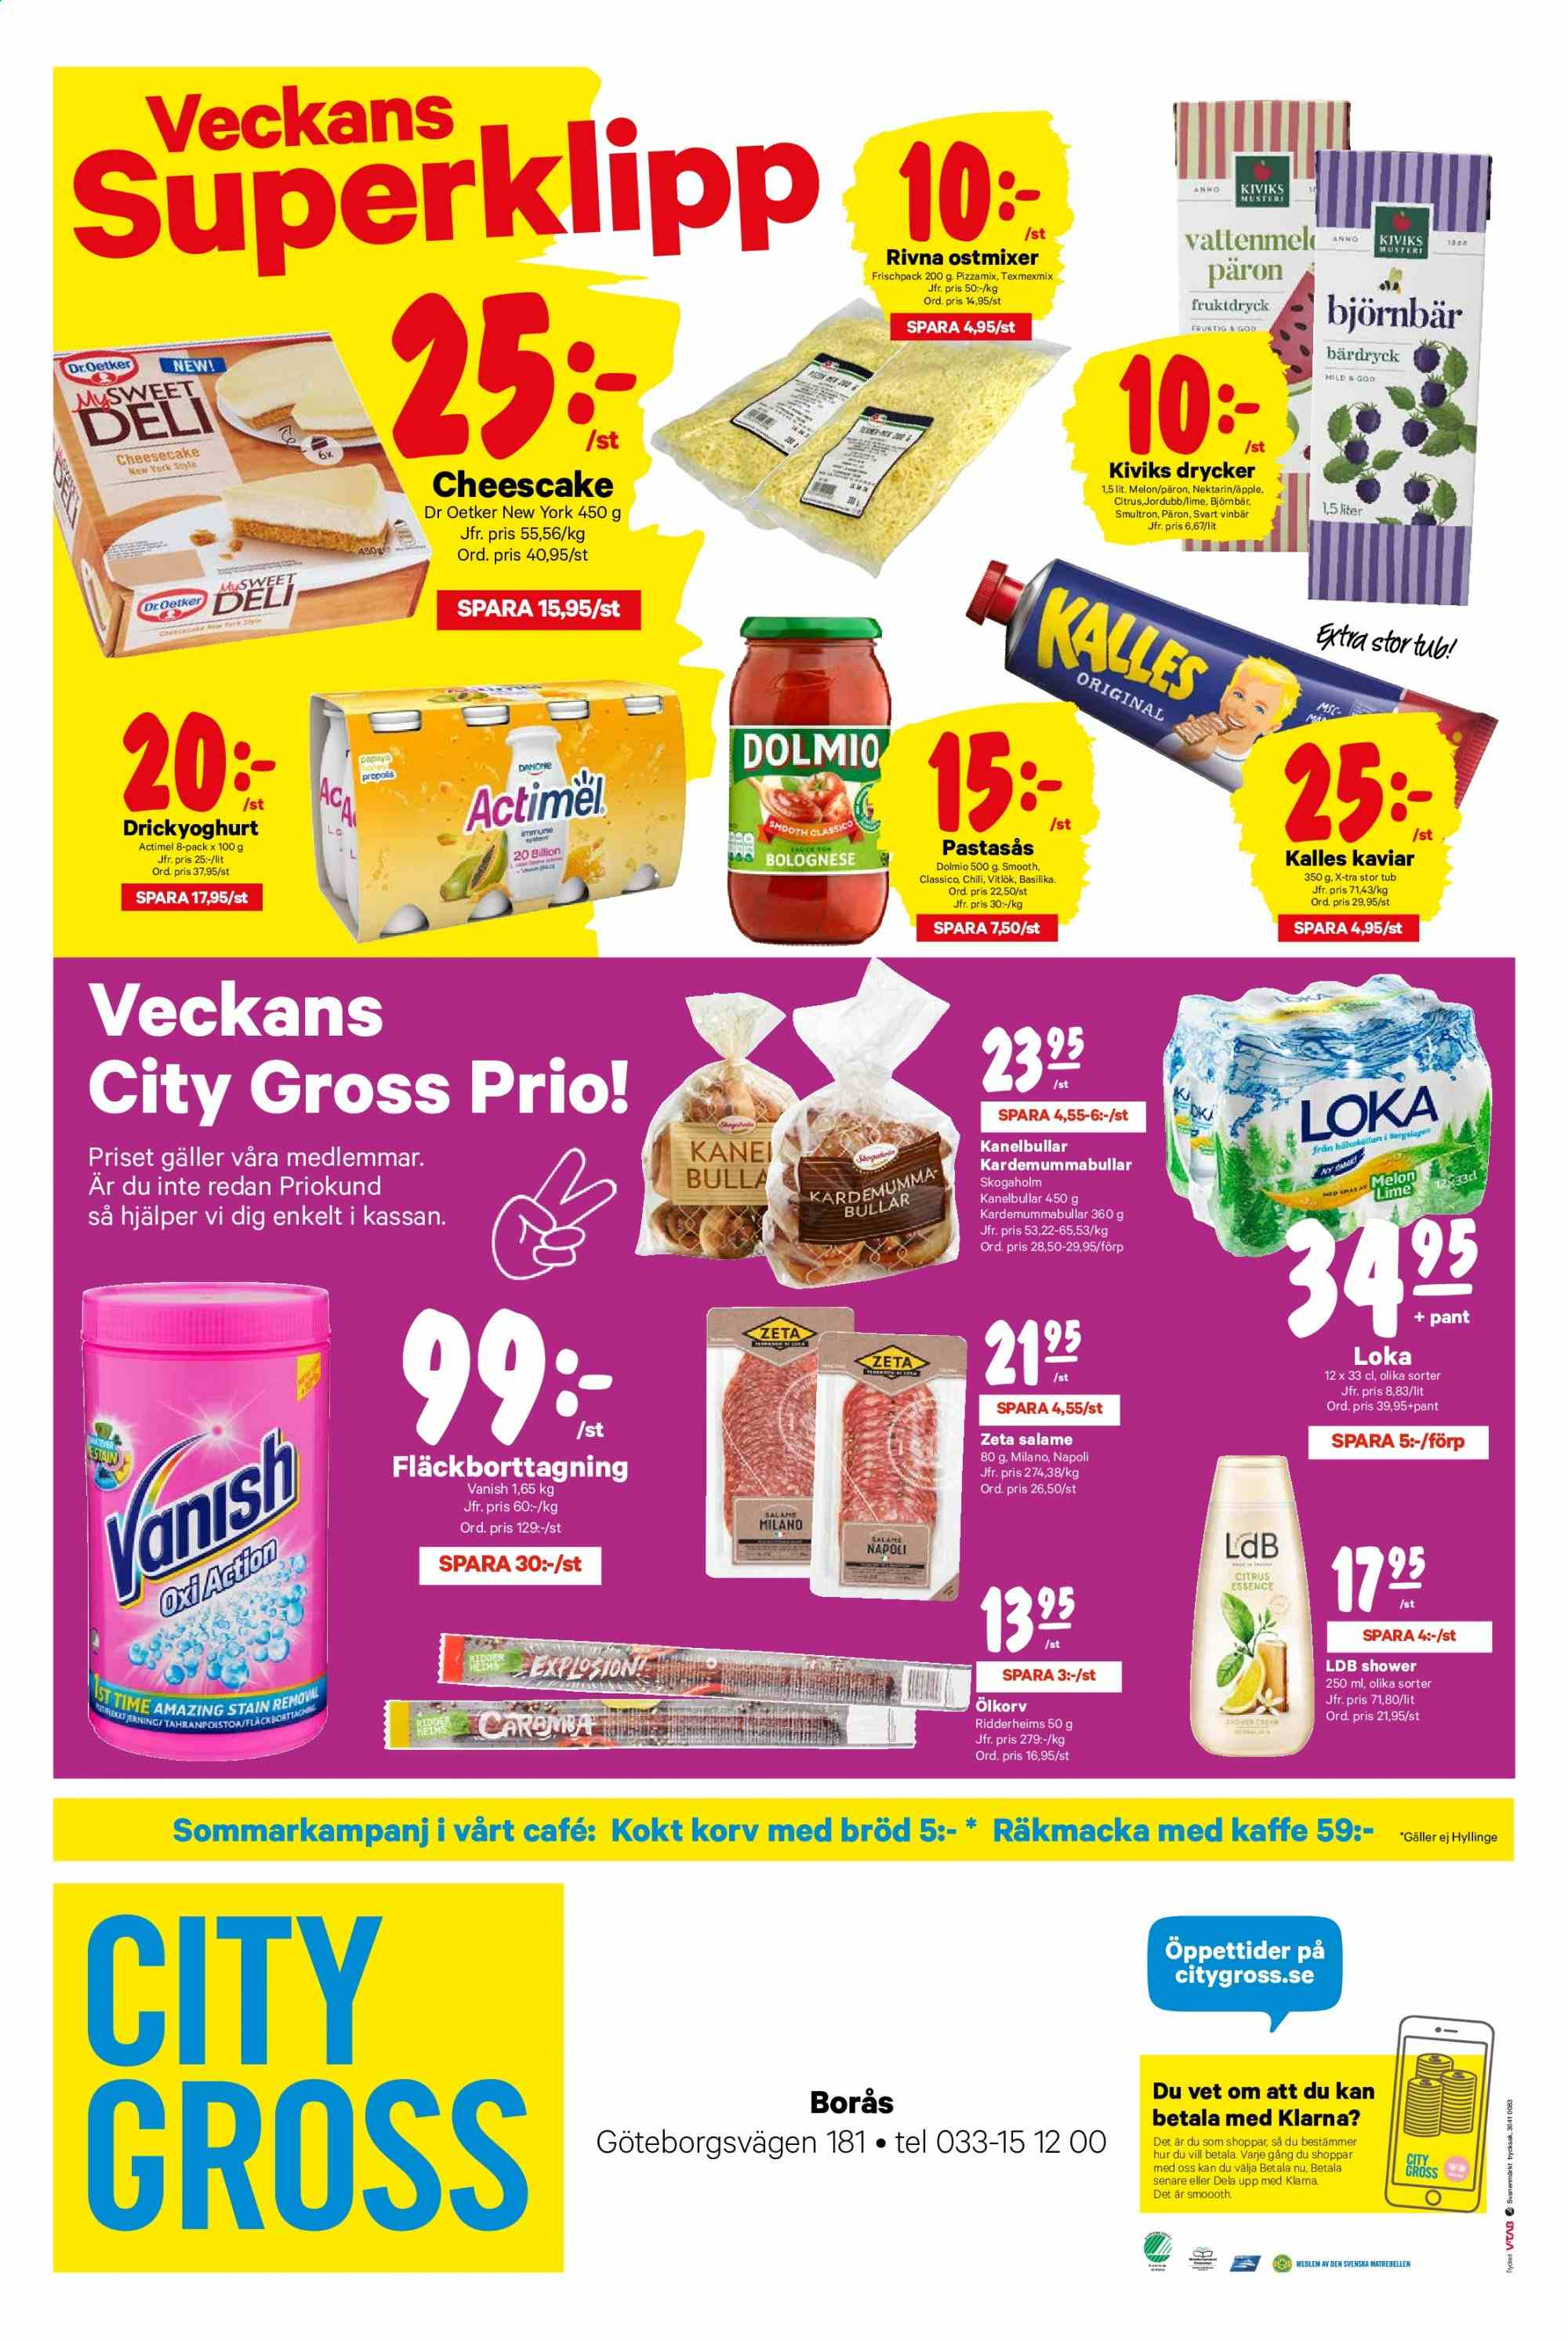 City Gross reklamblad - 22/7 2019 - 28/7 2019. Sida 12.